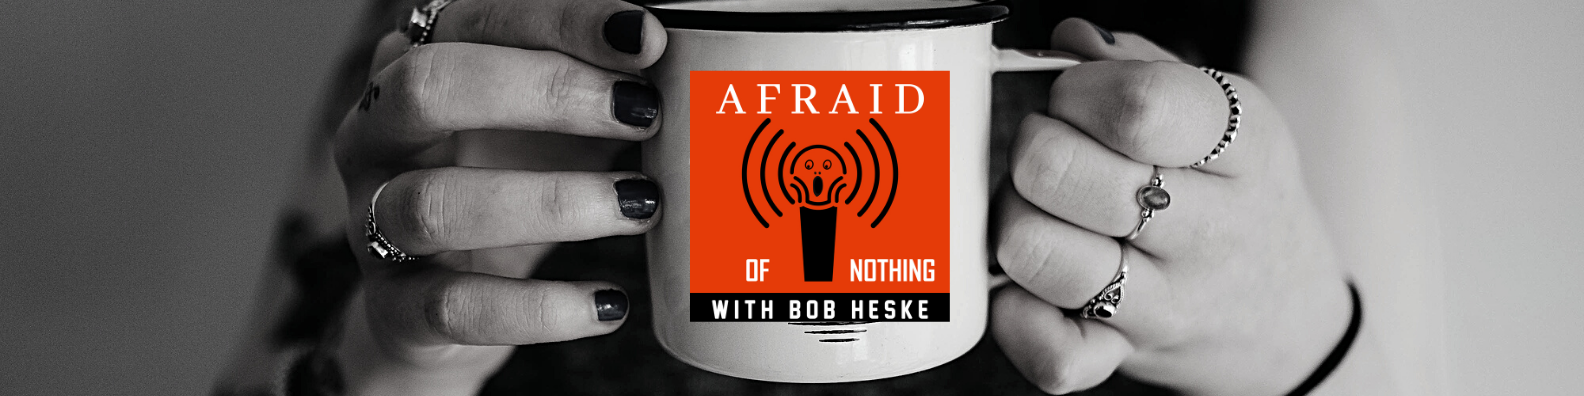 Afraid of Nothing Podcast Newsletter Signup